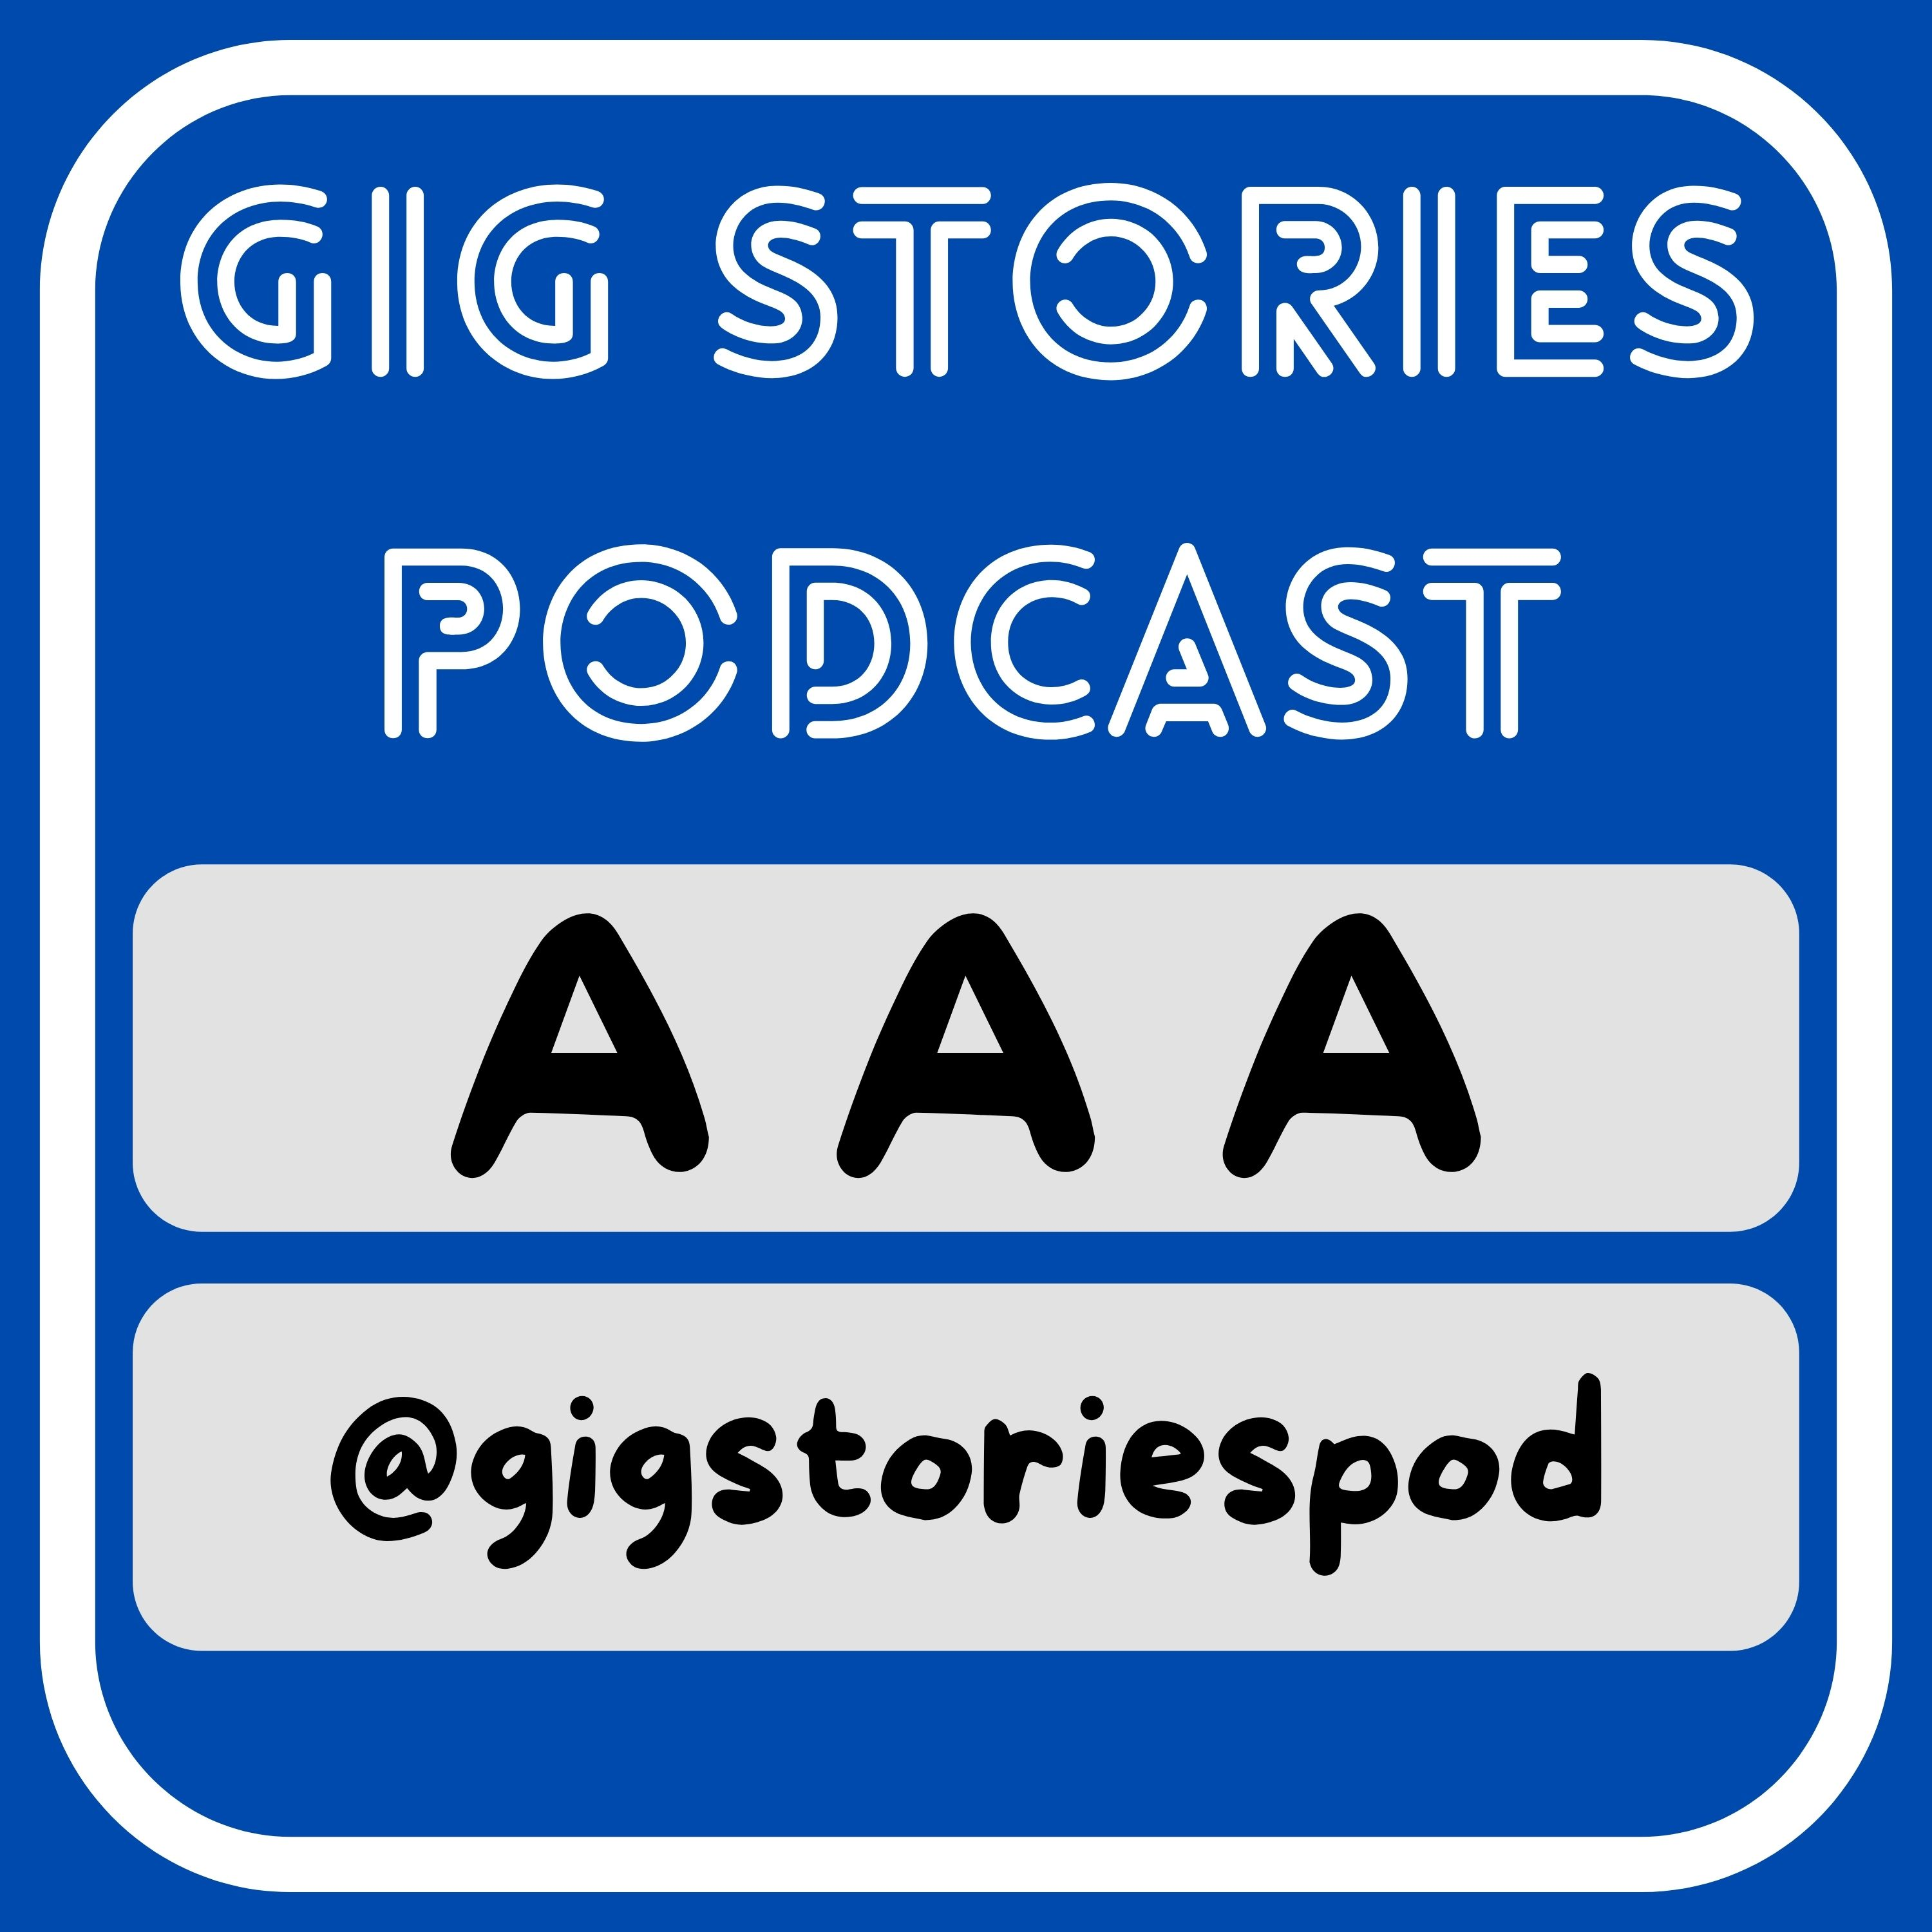 The Gig Stories Podcast